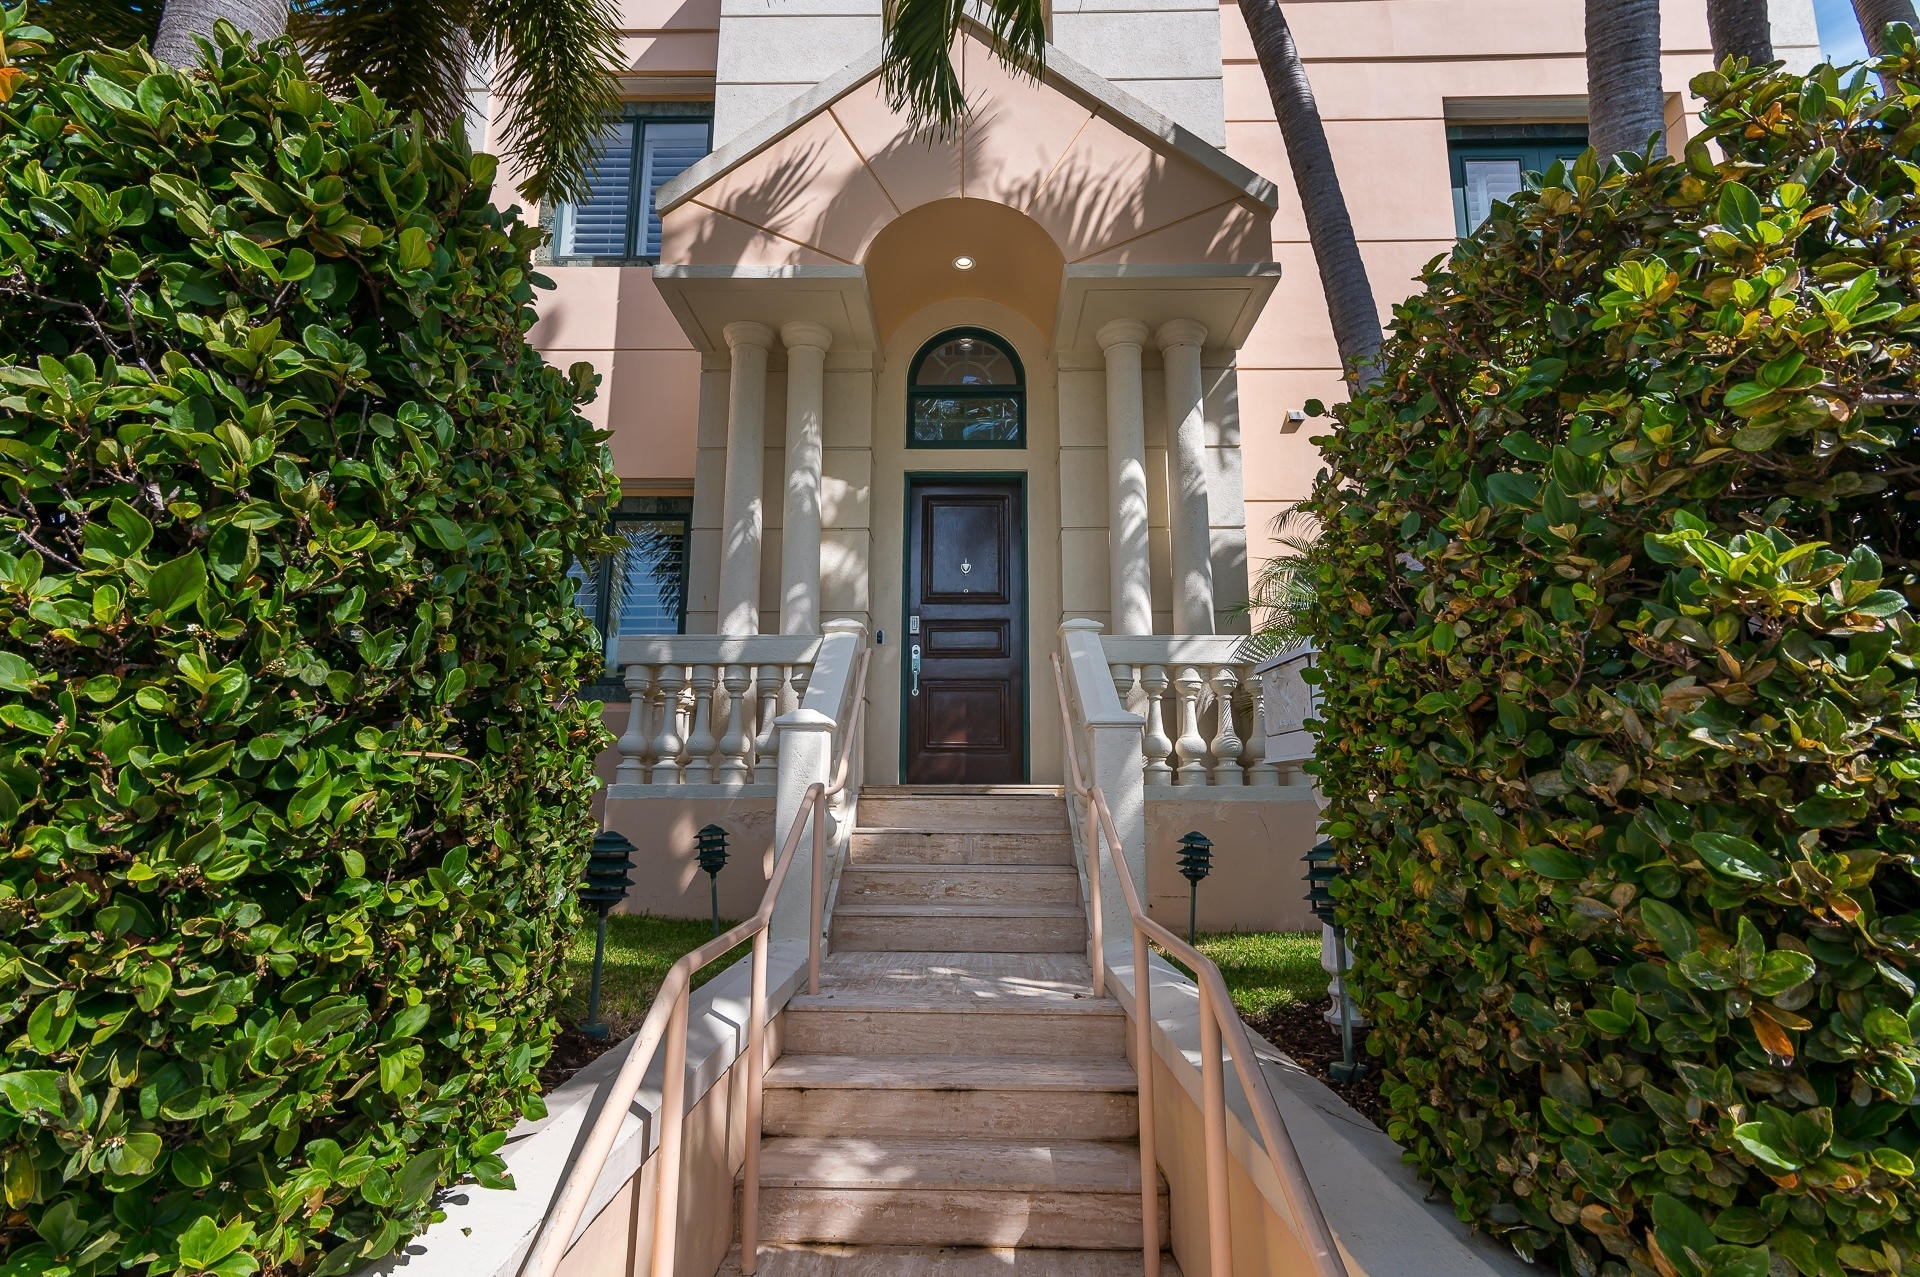 Single Family Townhouse for Sale at 301 Everglade Avenue, 10 Palm Beach, FL 33480